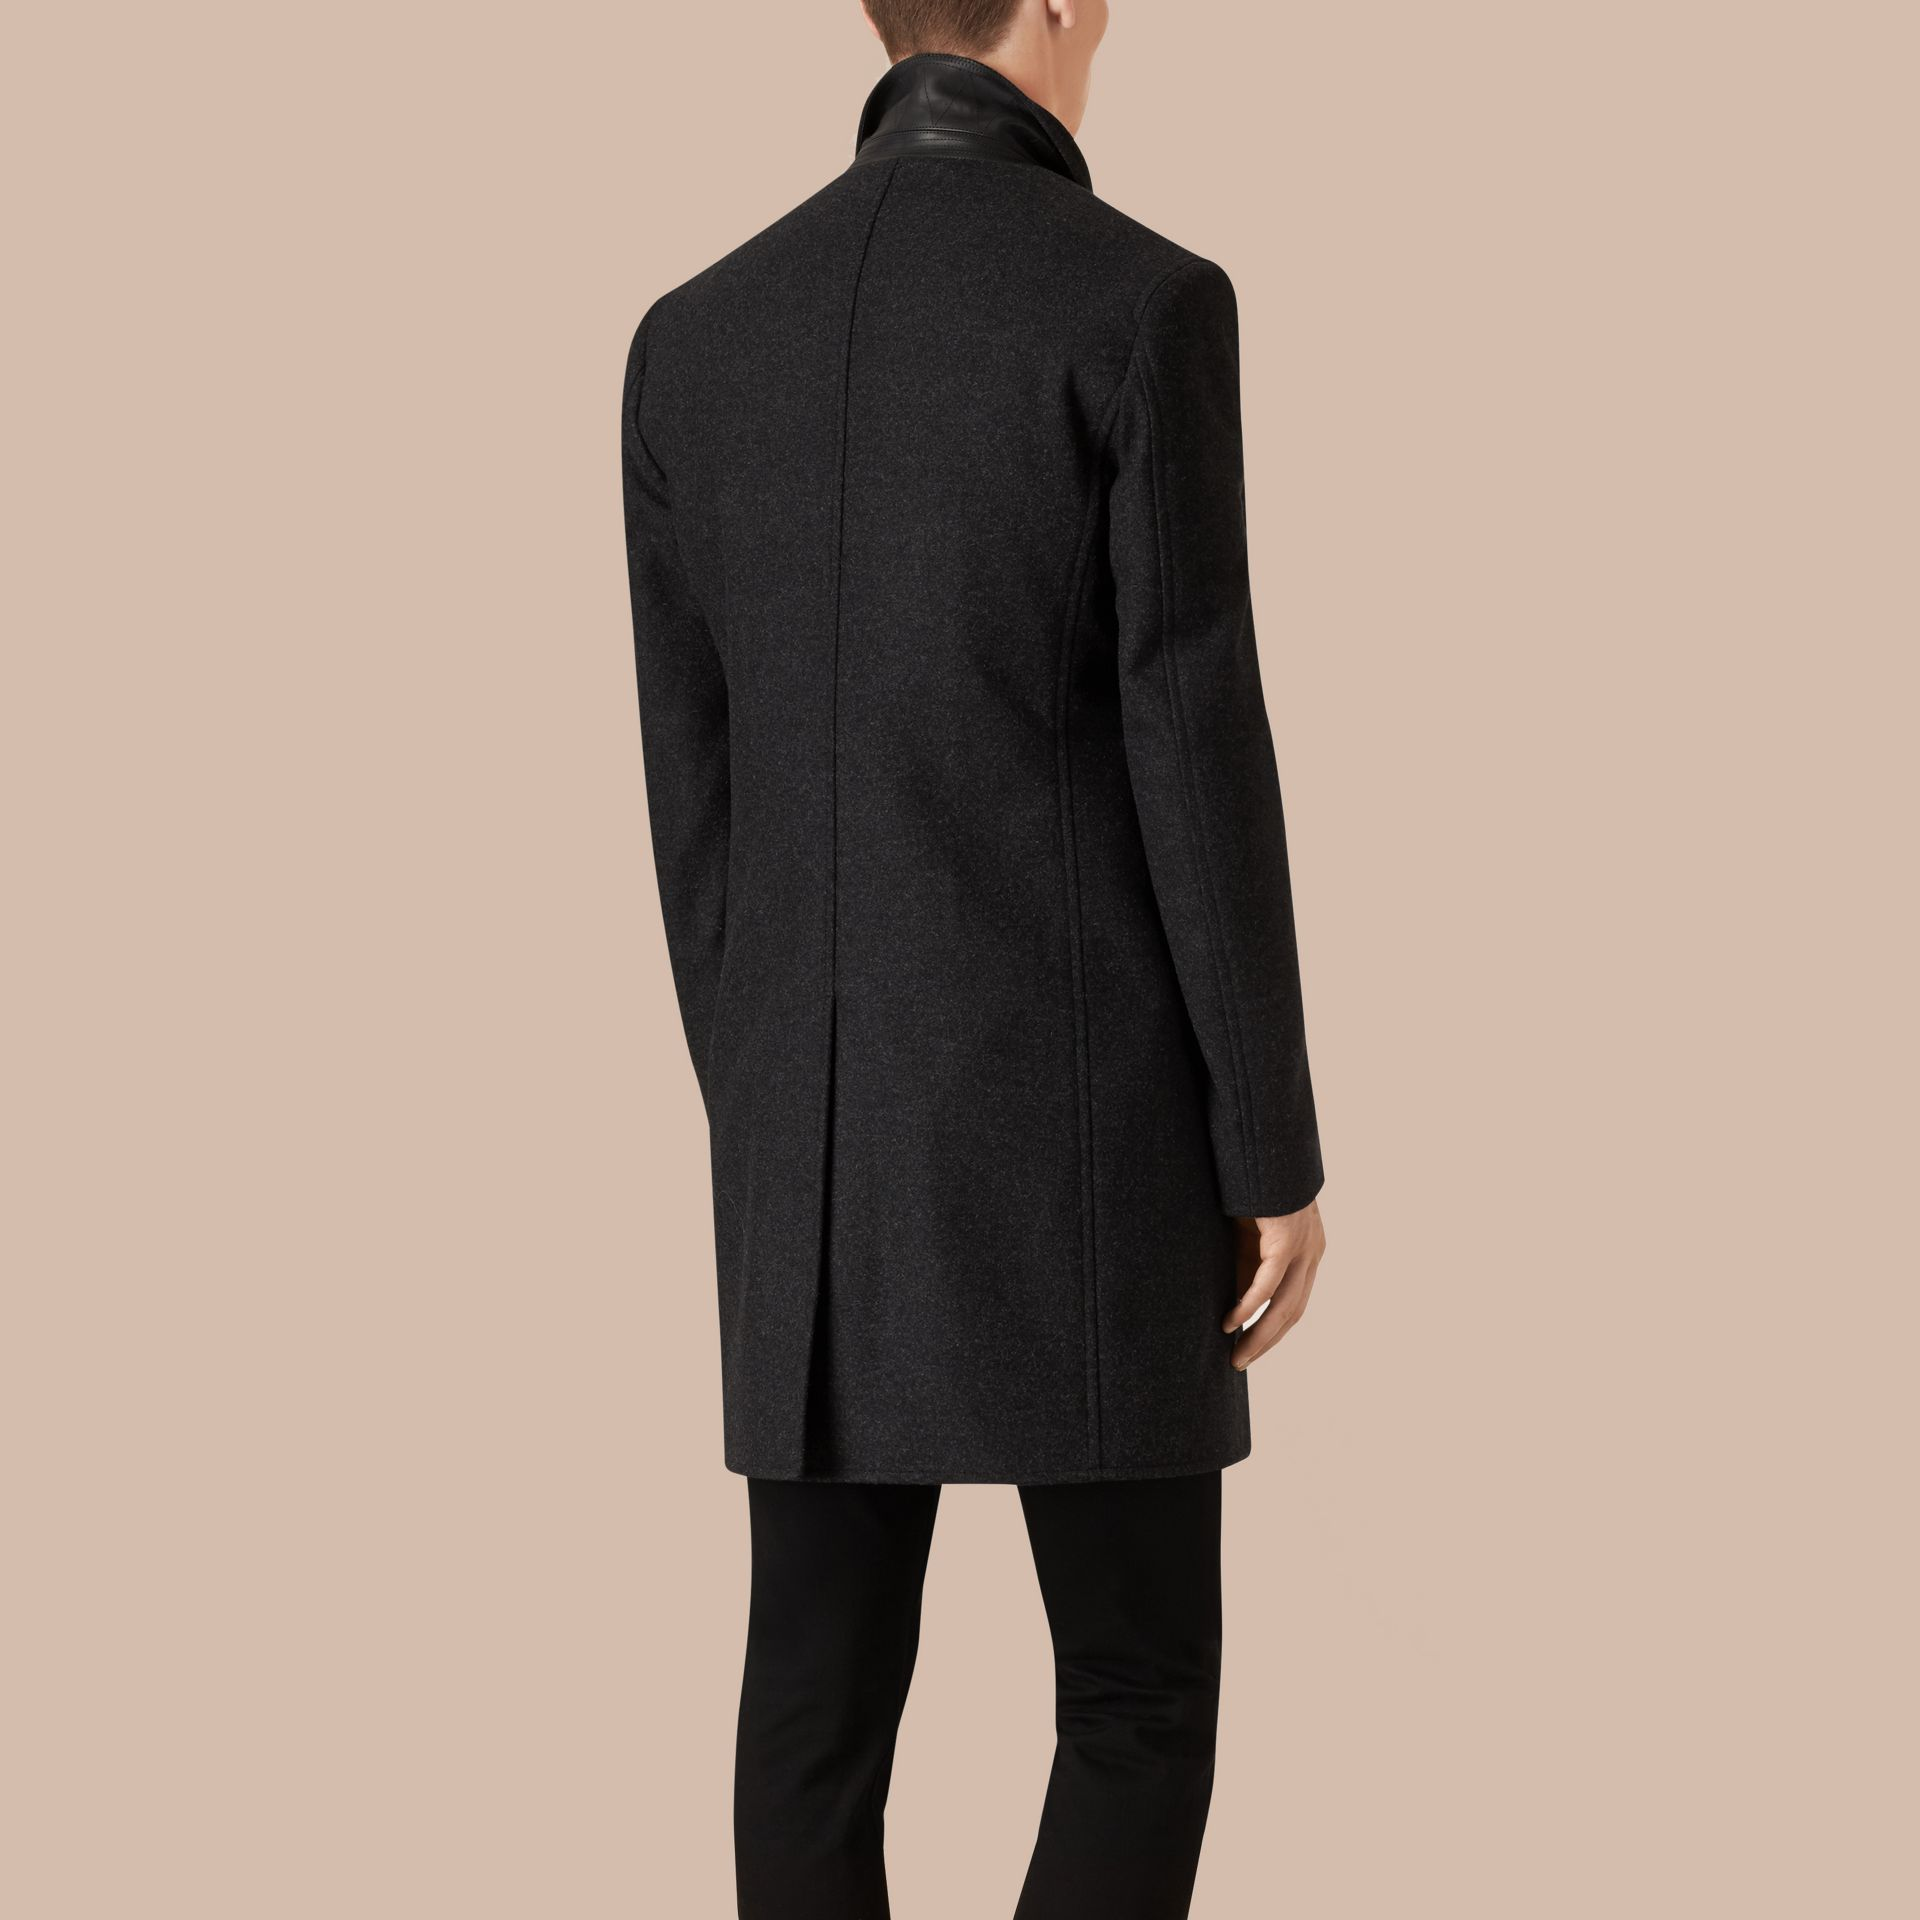 Dark charcoal melange Wool Cashmere Melton Coat with Warmer Dark Charcoal Melange - gallery image 3